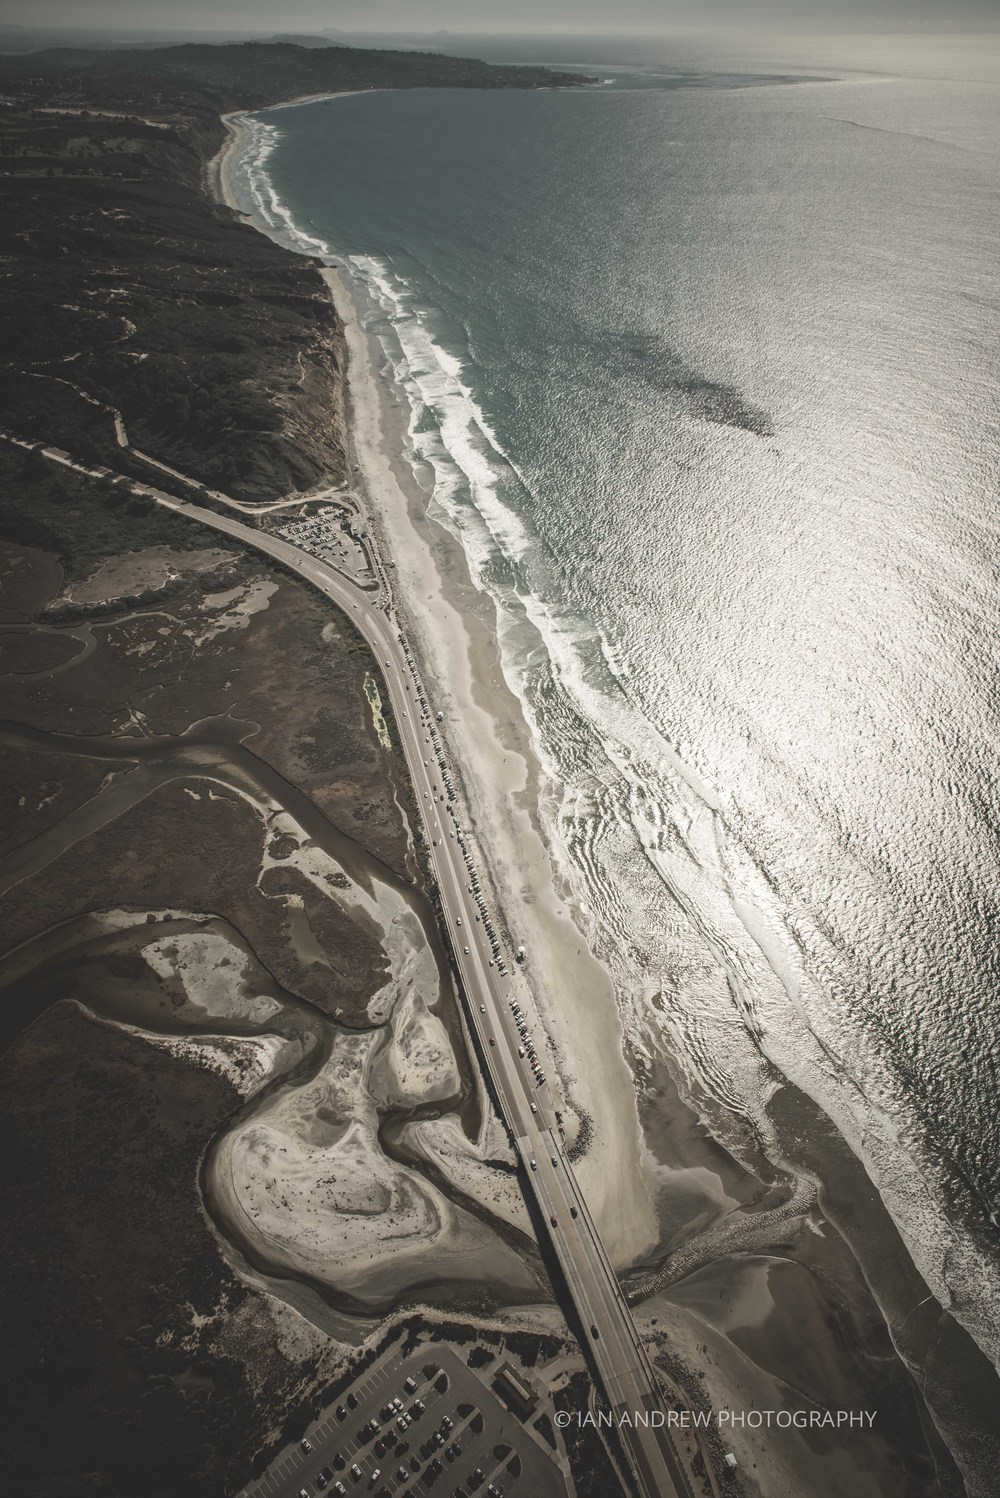 ian andrew photography aerial photography3.jpg